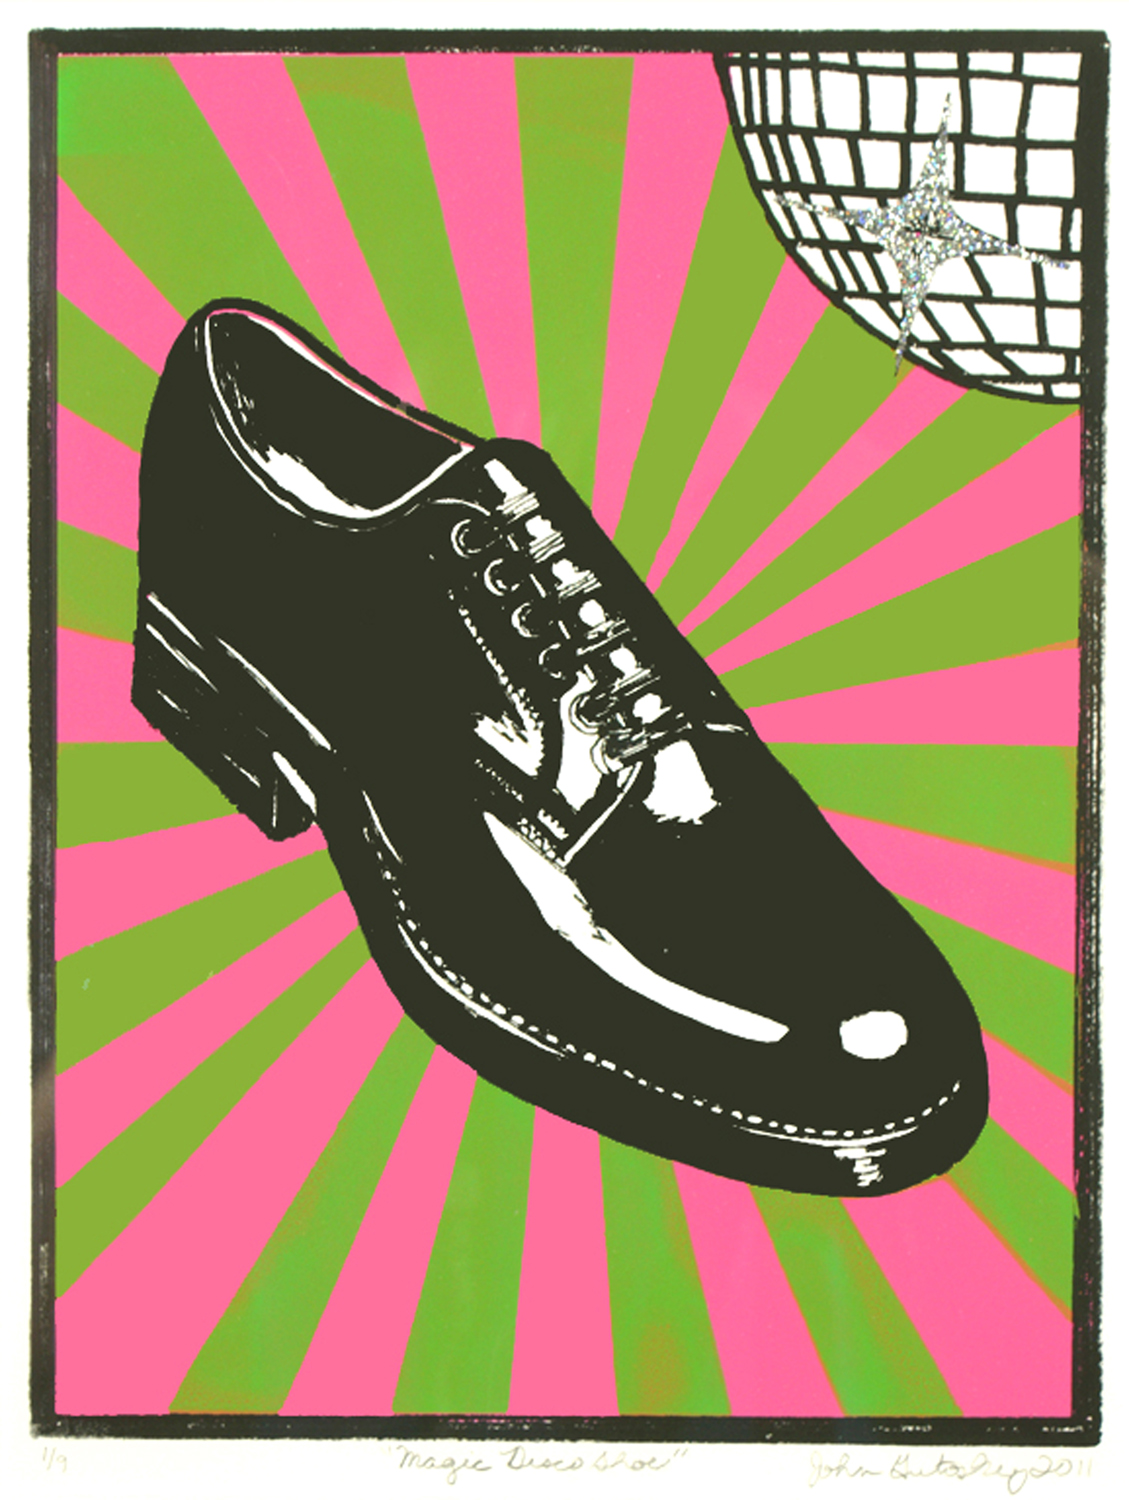 ""\""""Magic Disco Shoe""""     silkscreen and glitter on Arches 88     15""""h x 11""""w     2011     Edition of 4""1129|1500|?|en|2|de679548f606ec635744464bb9381774|False|UNLIKELY|0.3227138817310333